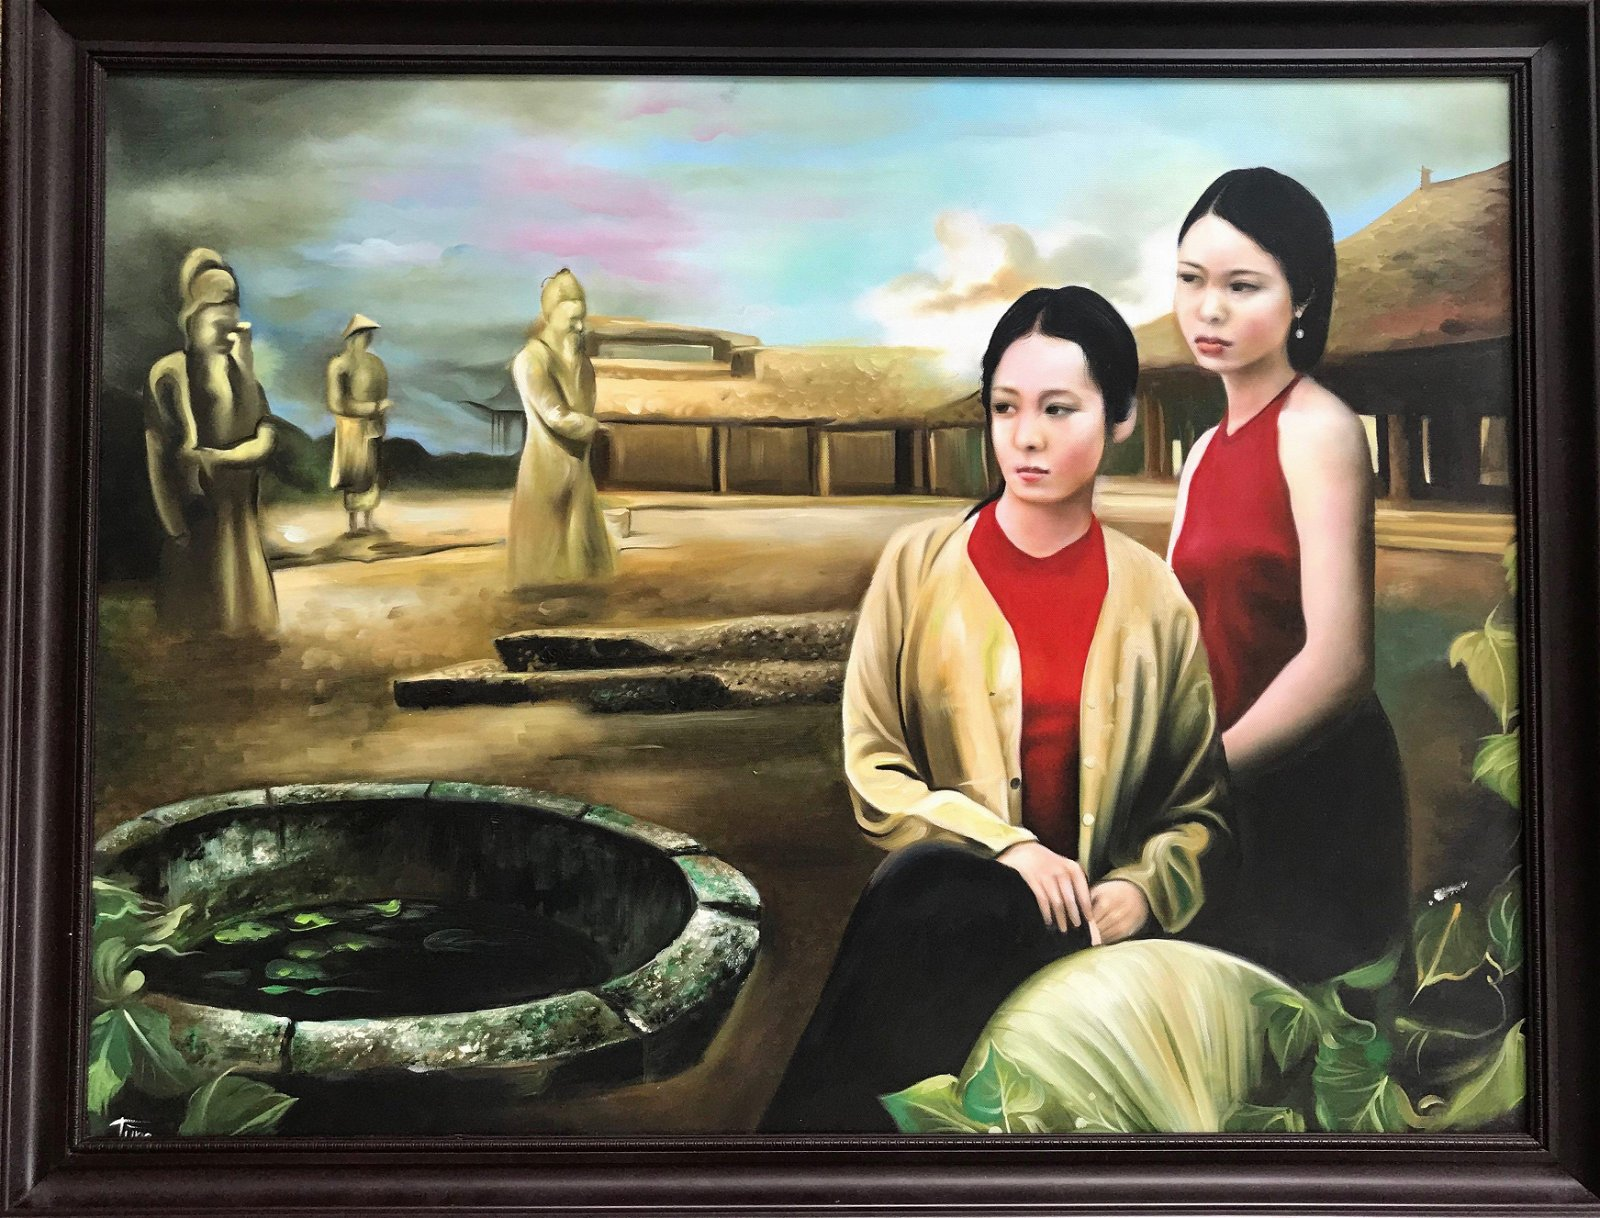 Chinese Oil Painting TRADITION IN MODERNITY Signed